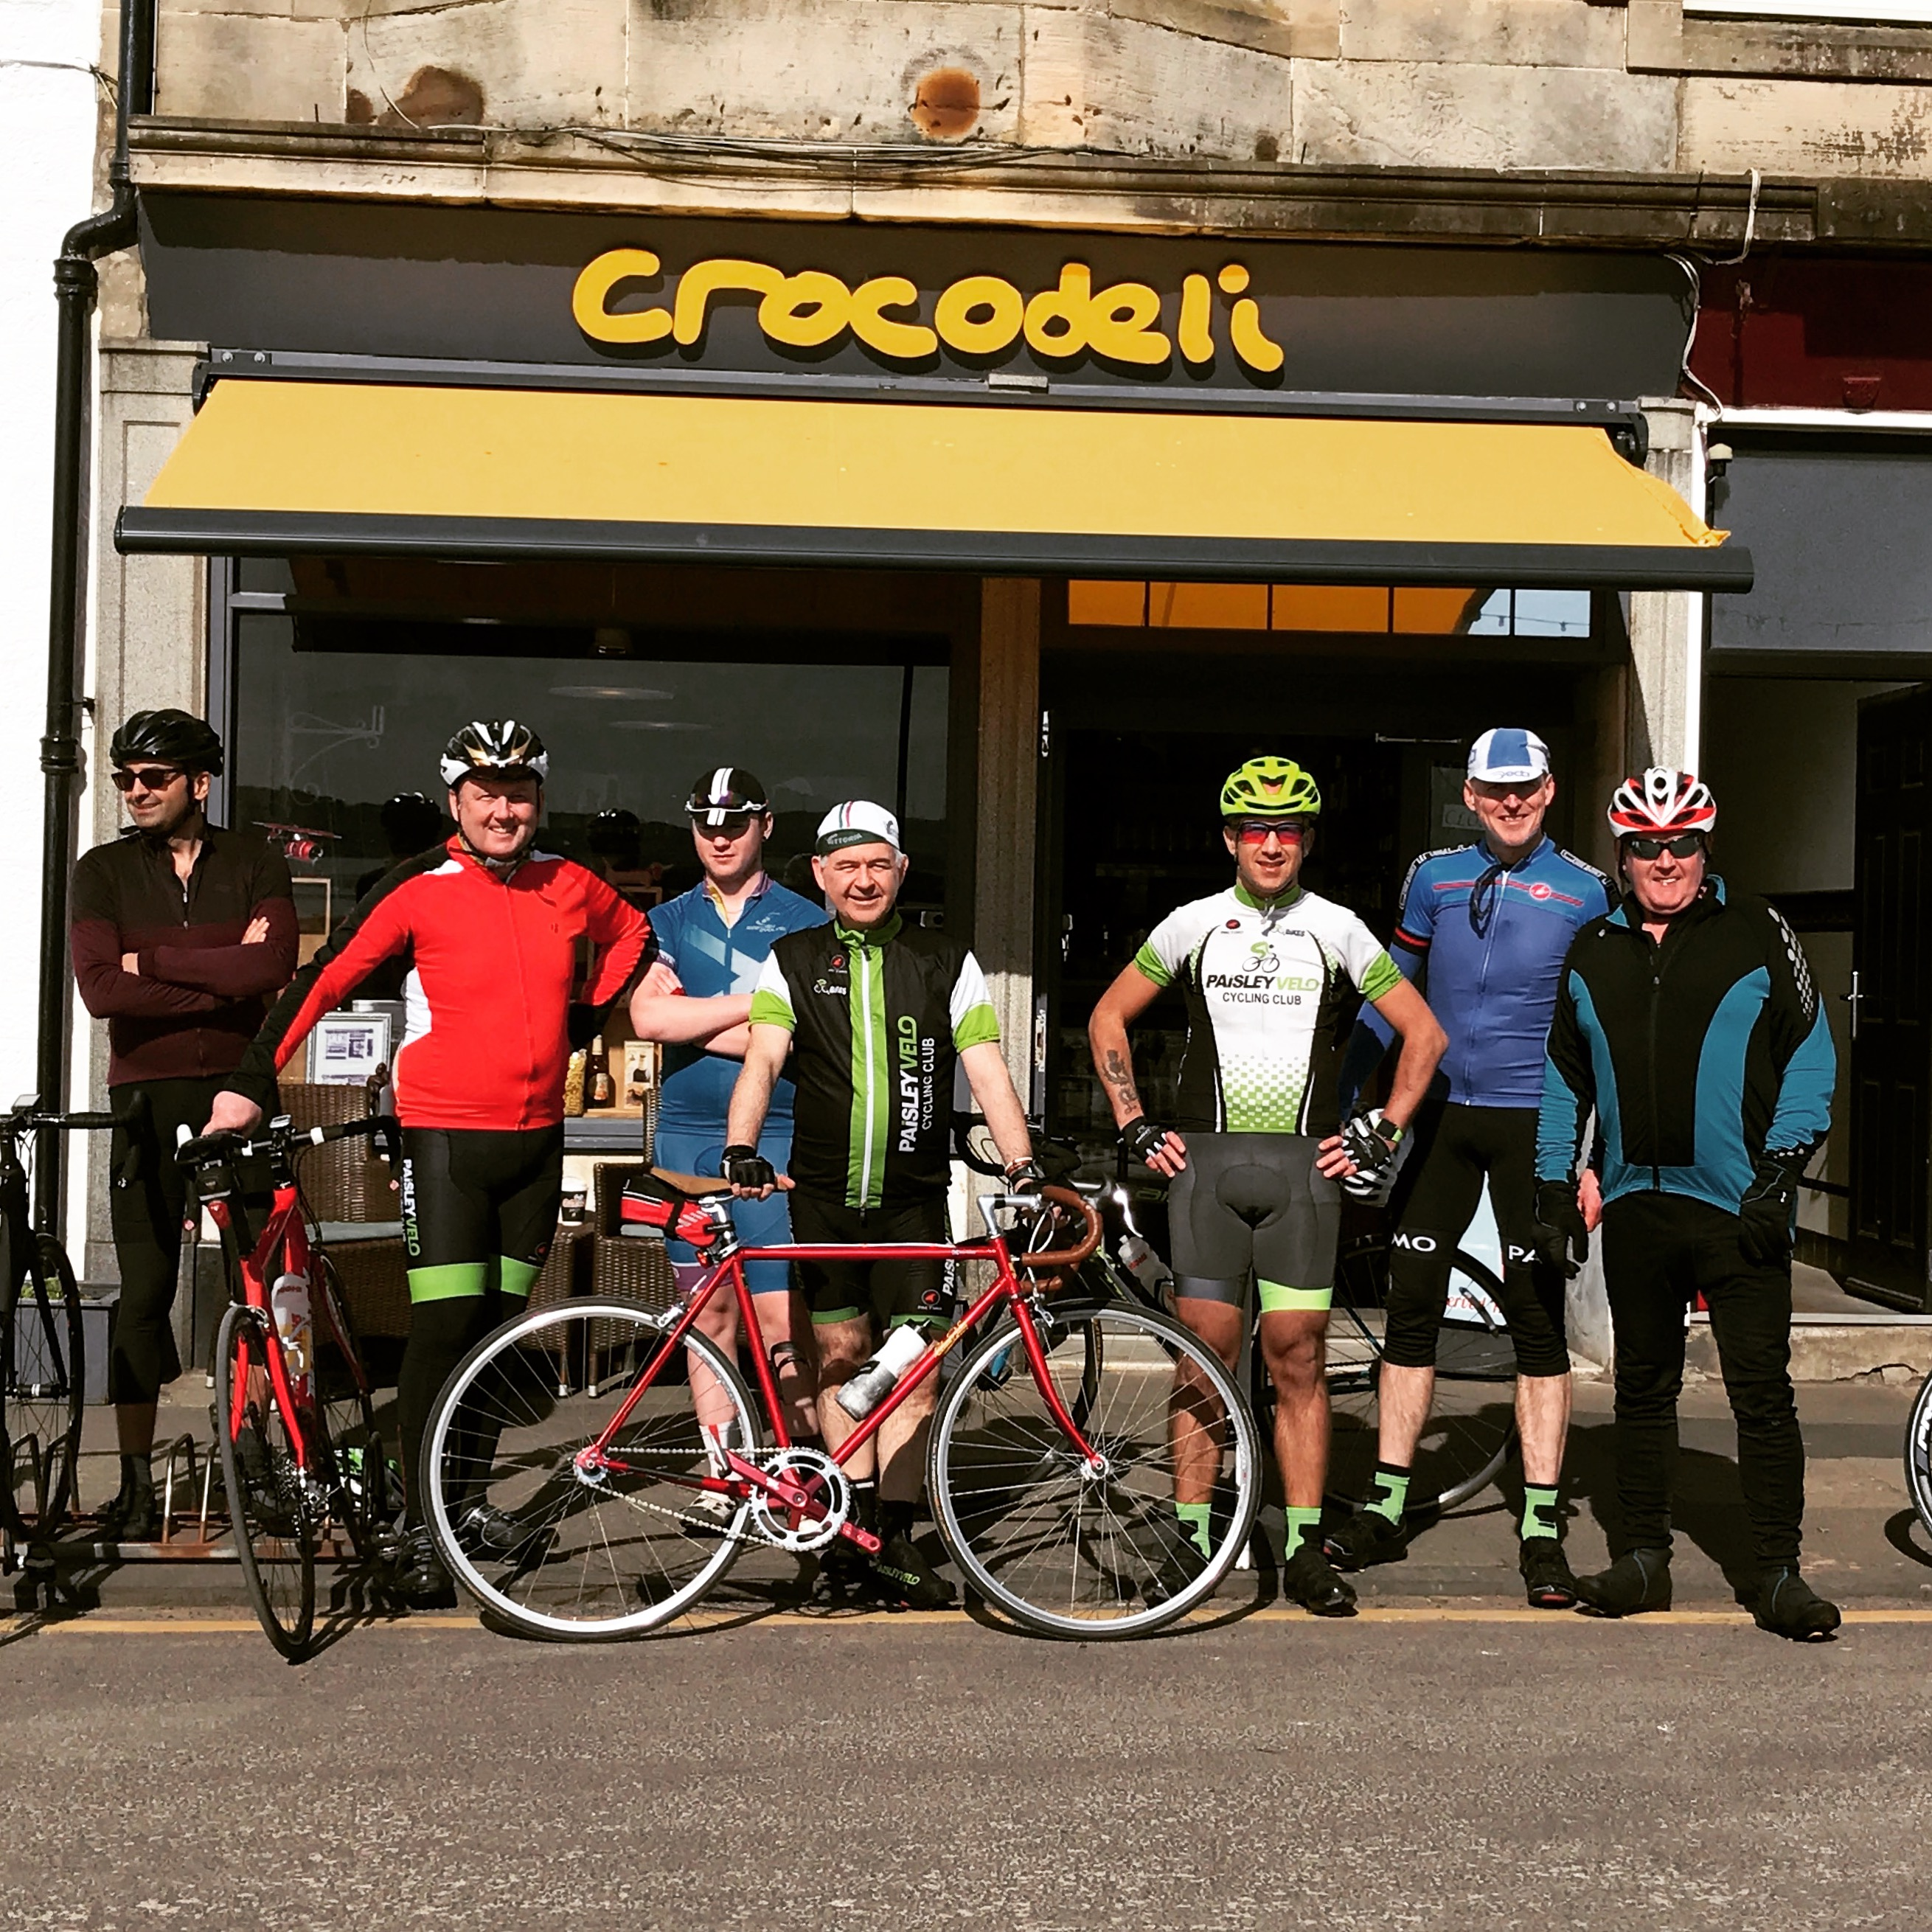 Some of the riders at the cafe stop at Millport for our Fixation event